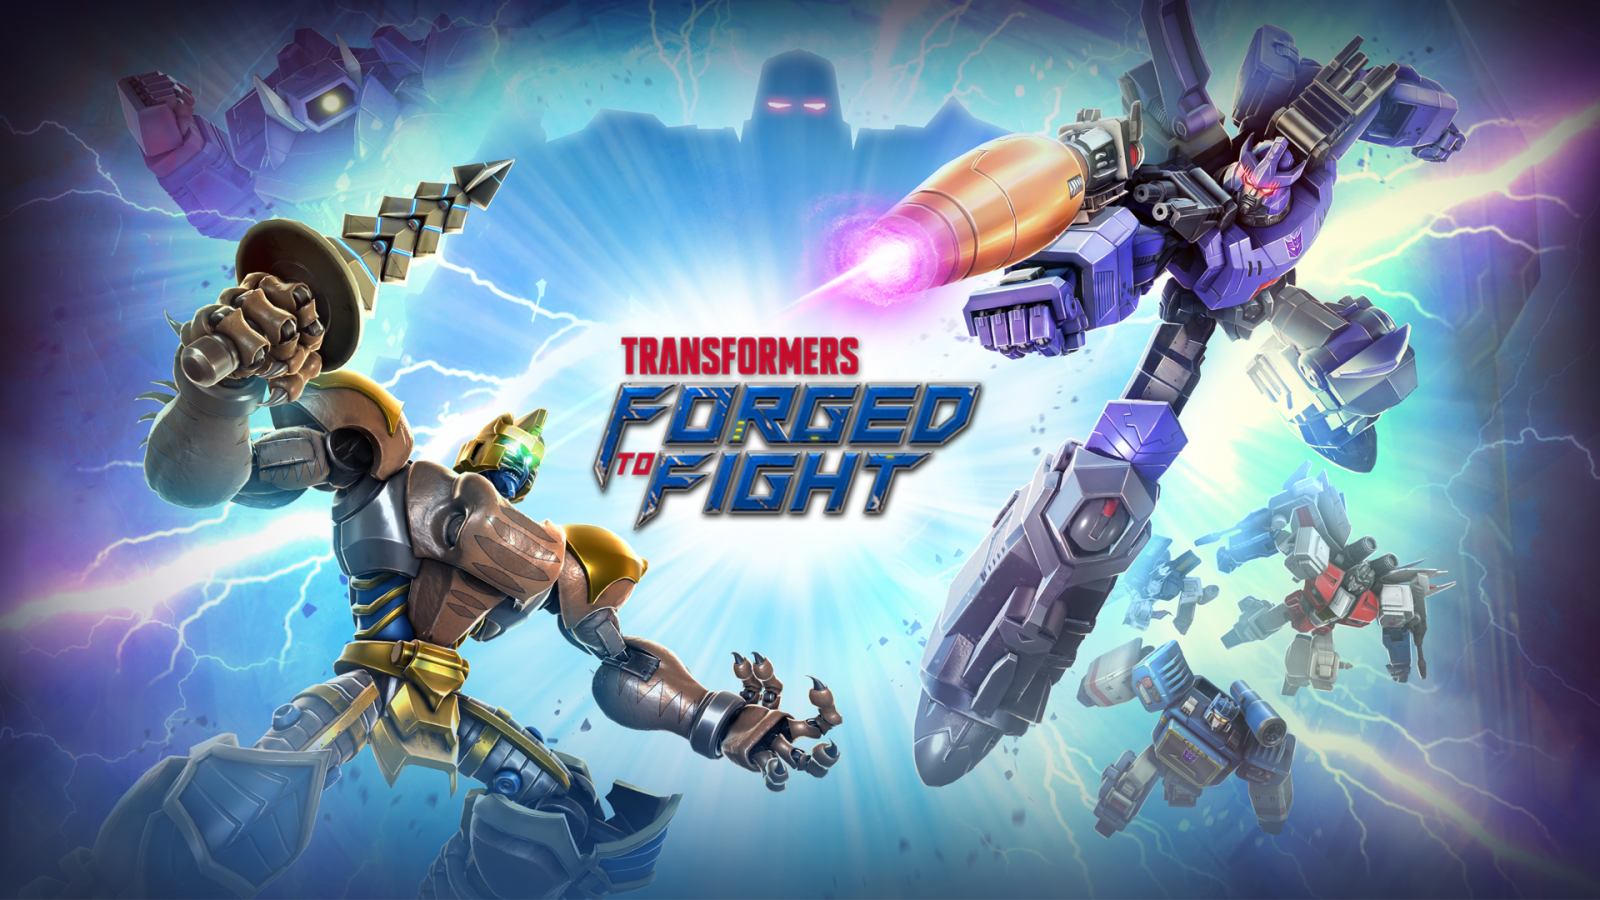 Transformers News: Beast Wars Dinobot Available in Transformers: Forged to Fight